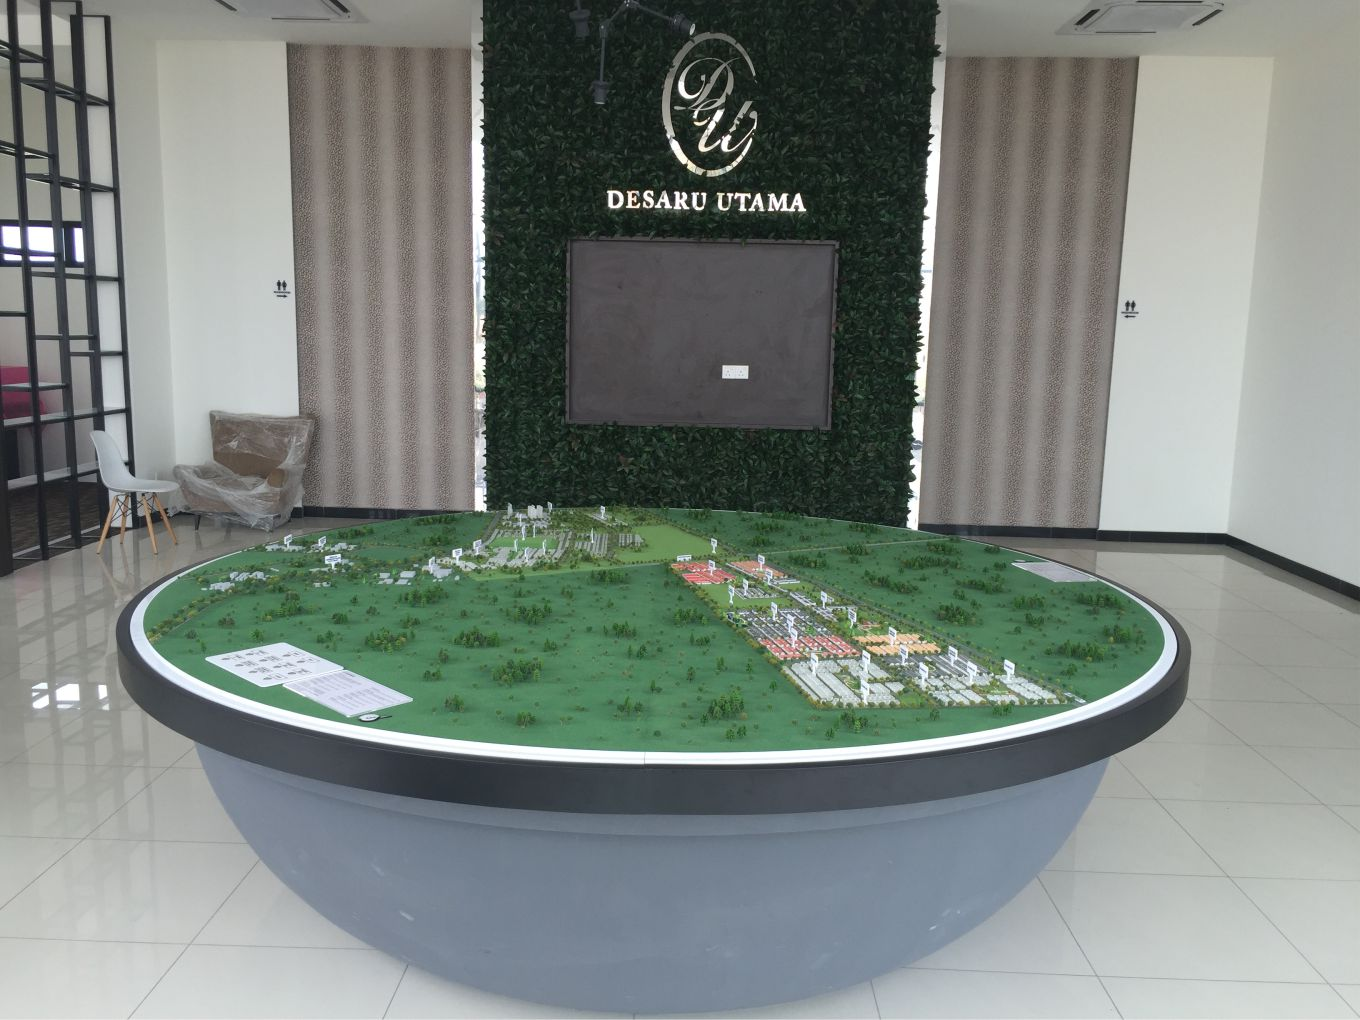 Masterplan Scale Model of Taman Sri Penawar ( Desaru Utama ) Scale 1:1500